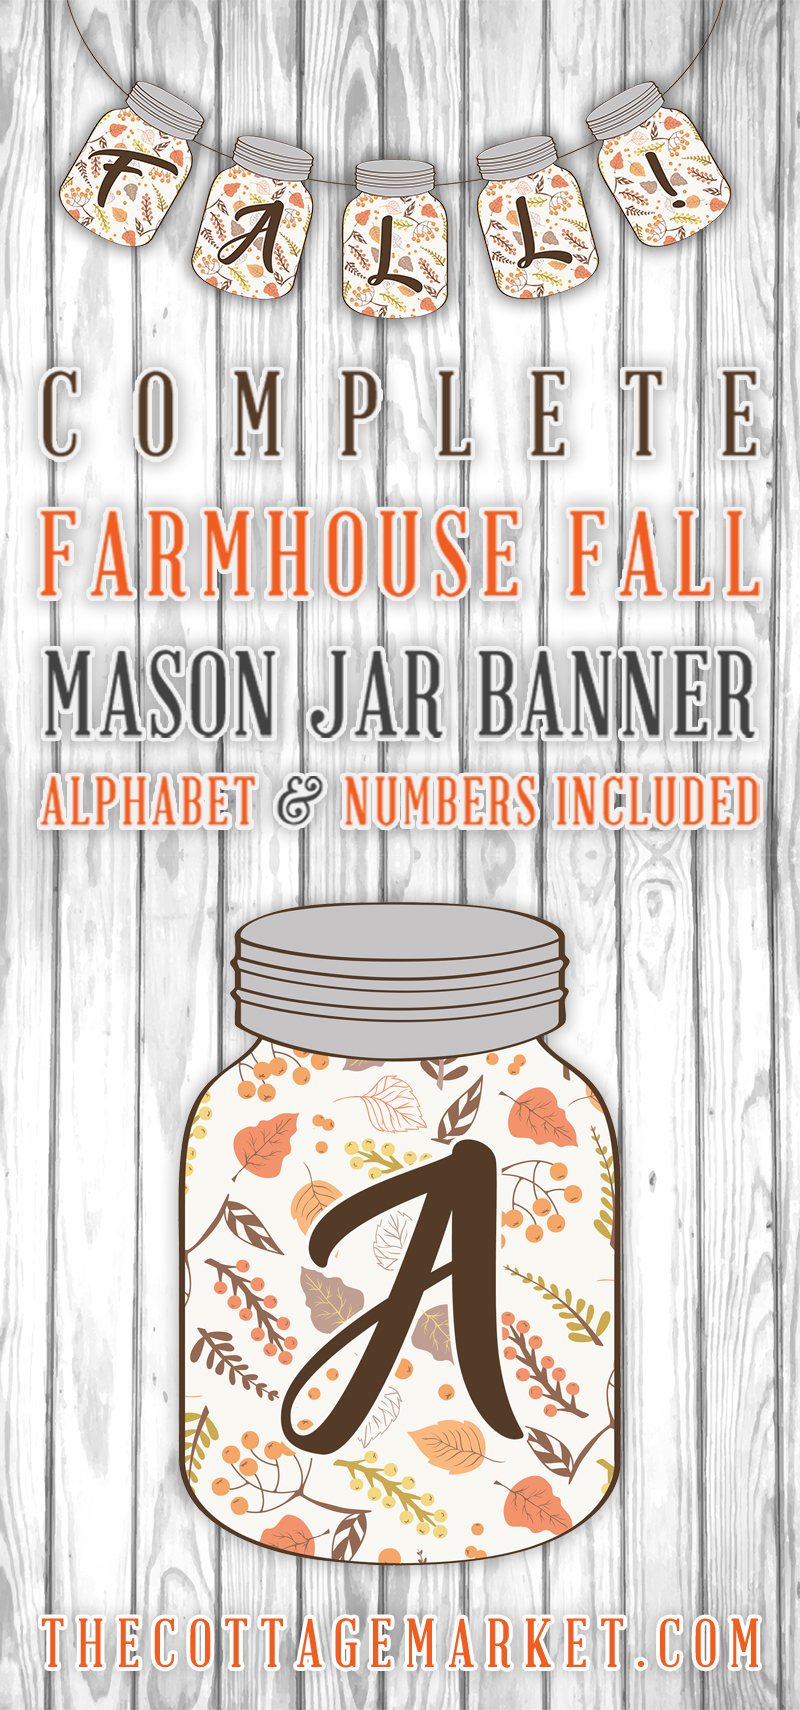 It's just an image of Impertinent Fall Banner Printable